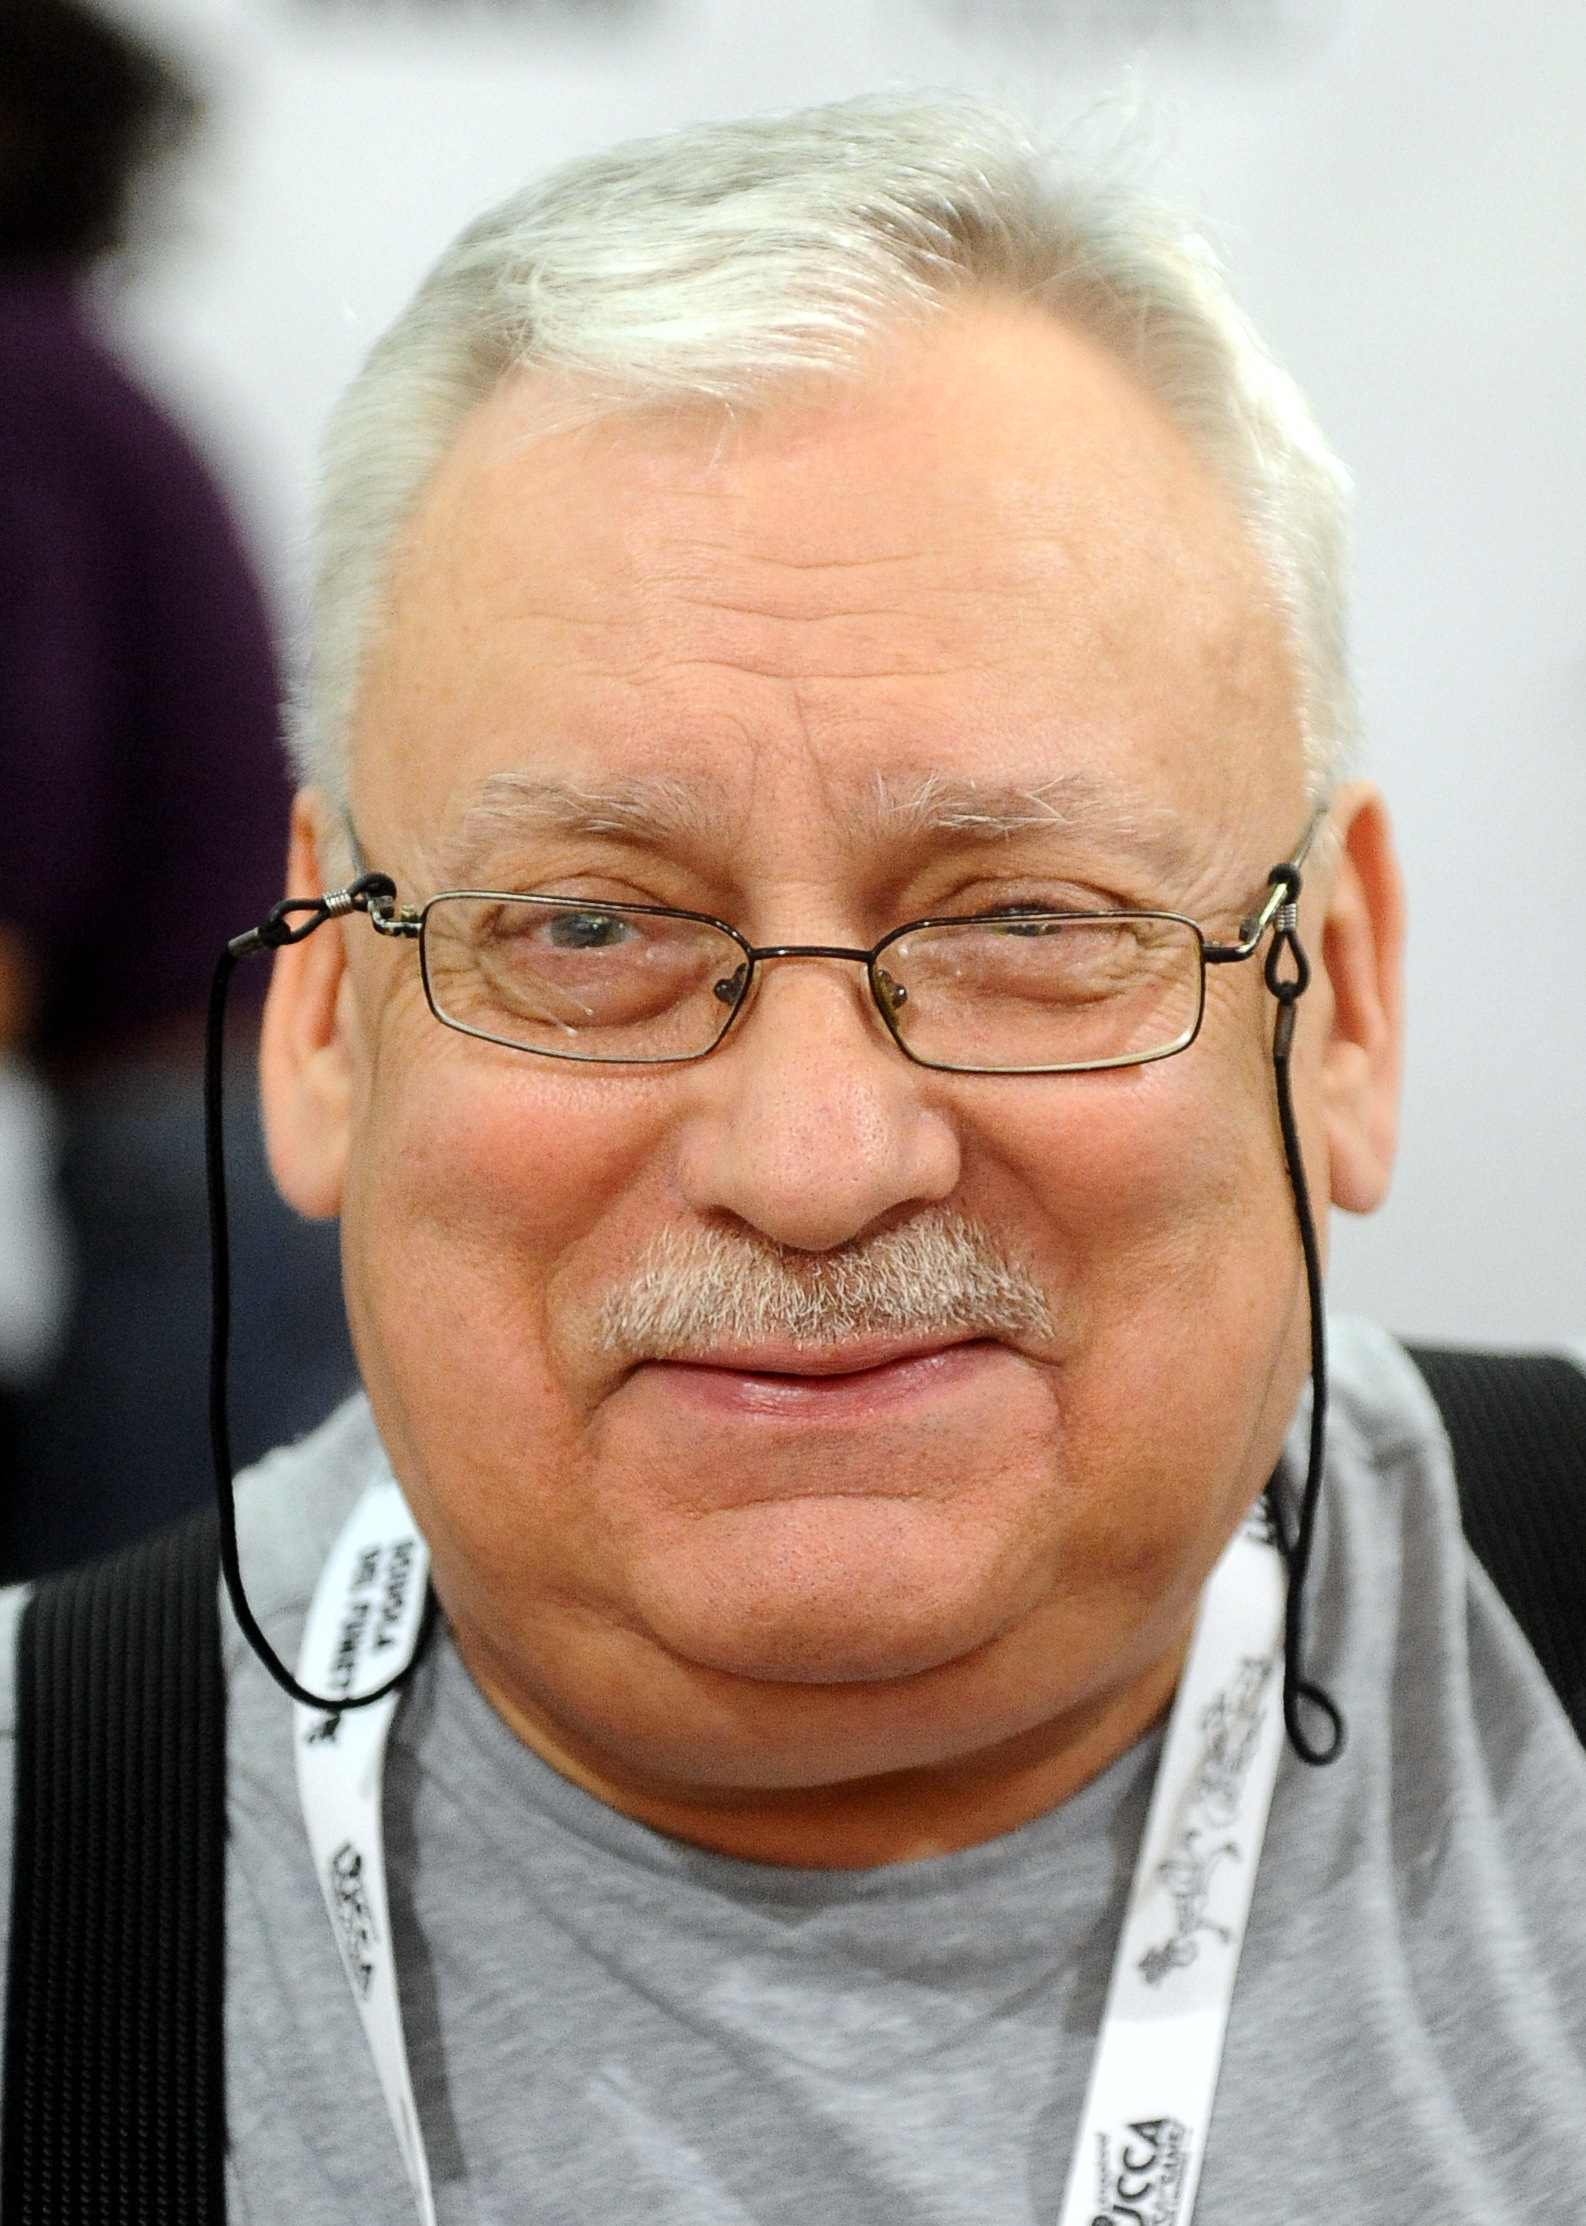 Sapkowski at Lucca Comics and Games 2015